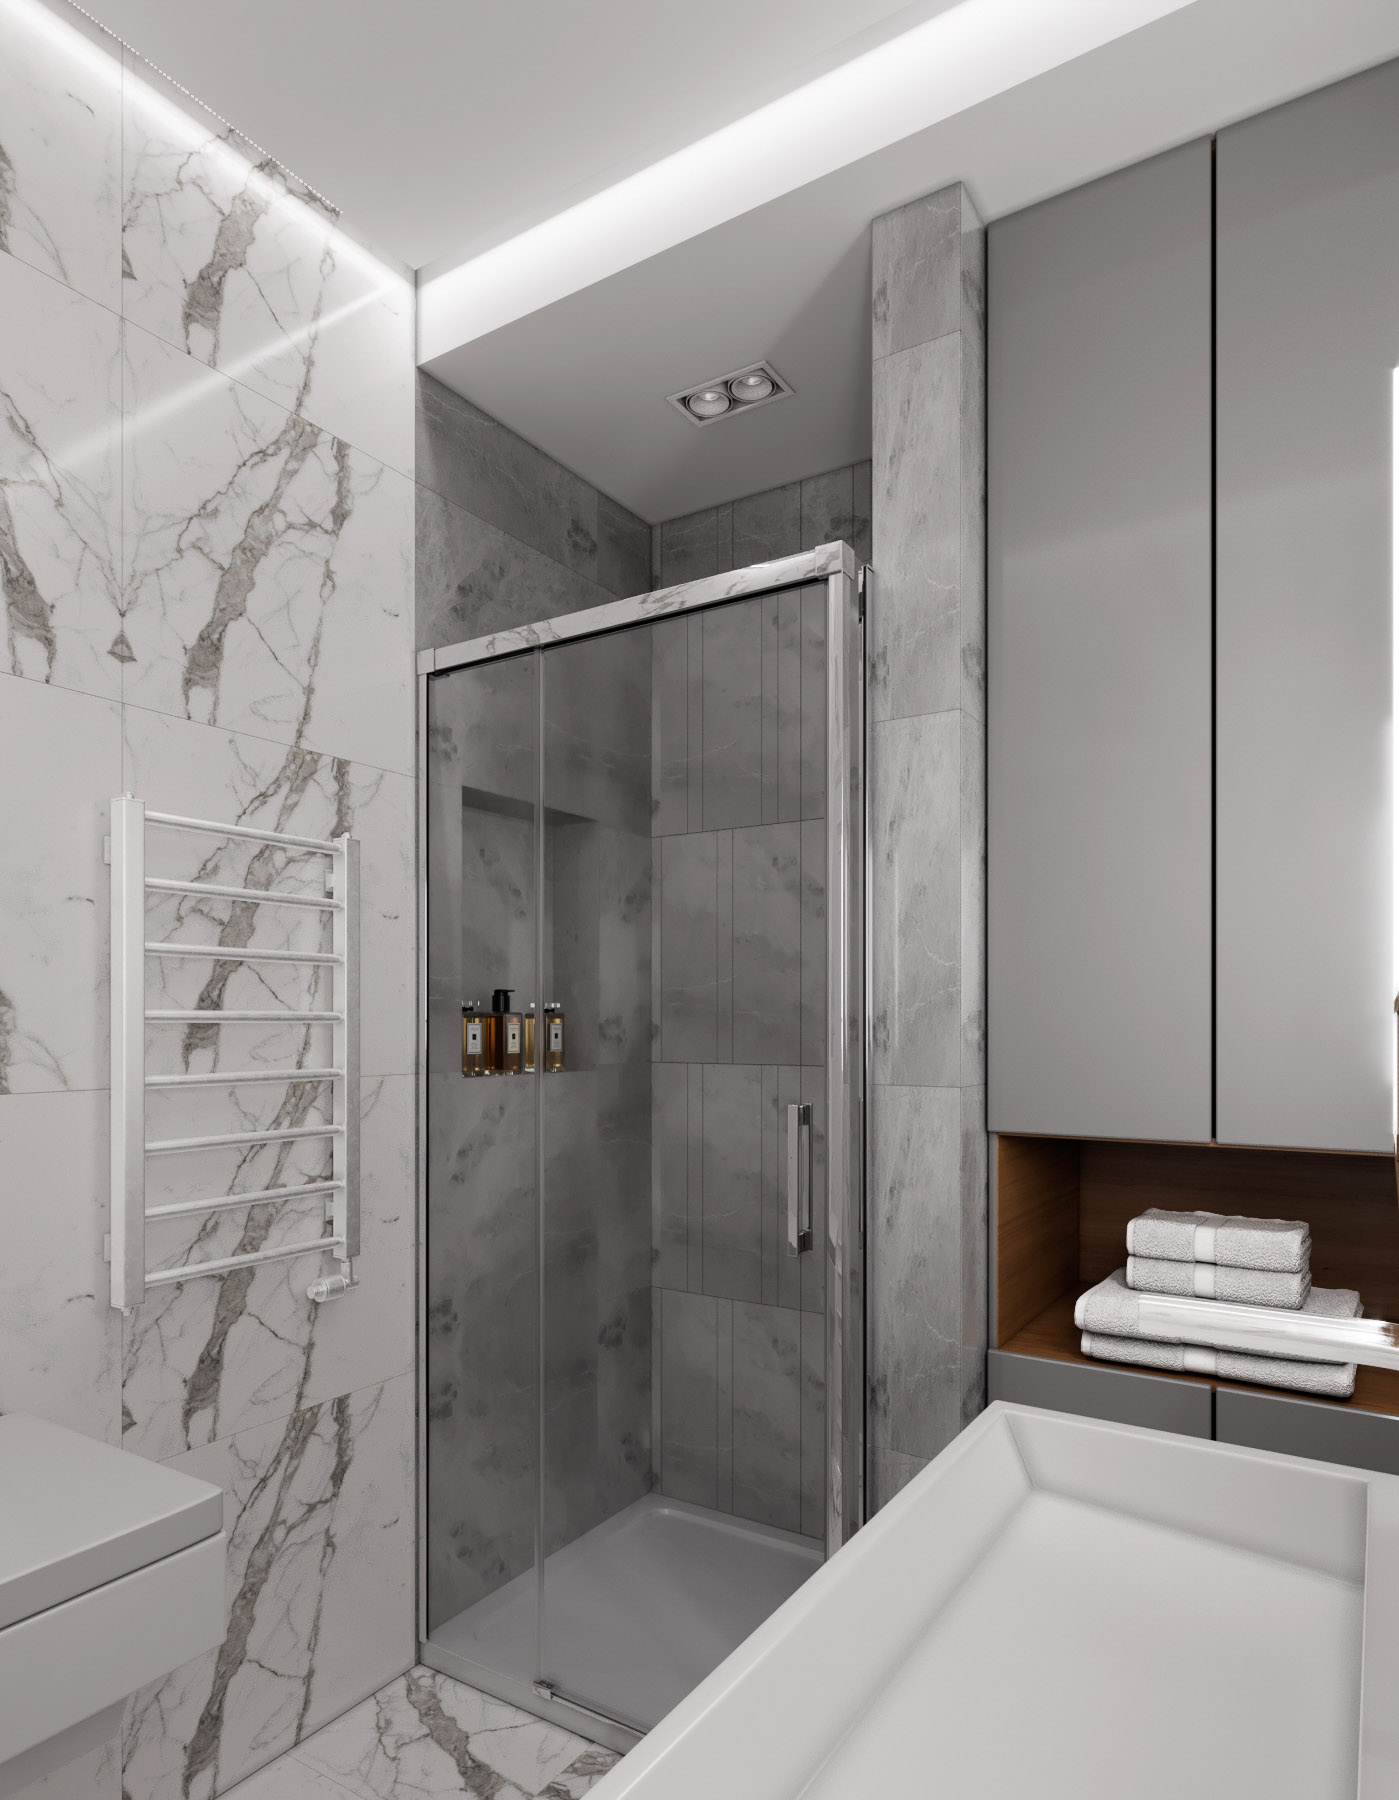 Option for bathroom interior design by Lera Bykova